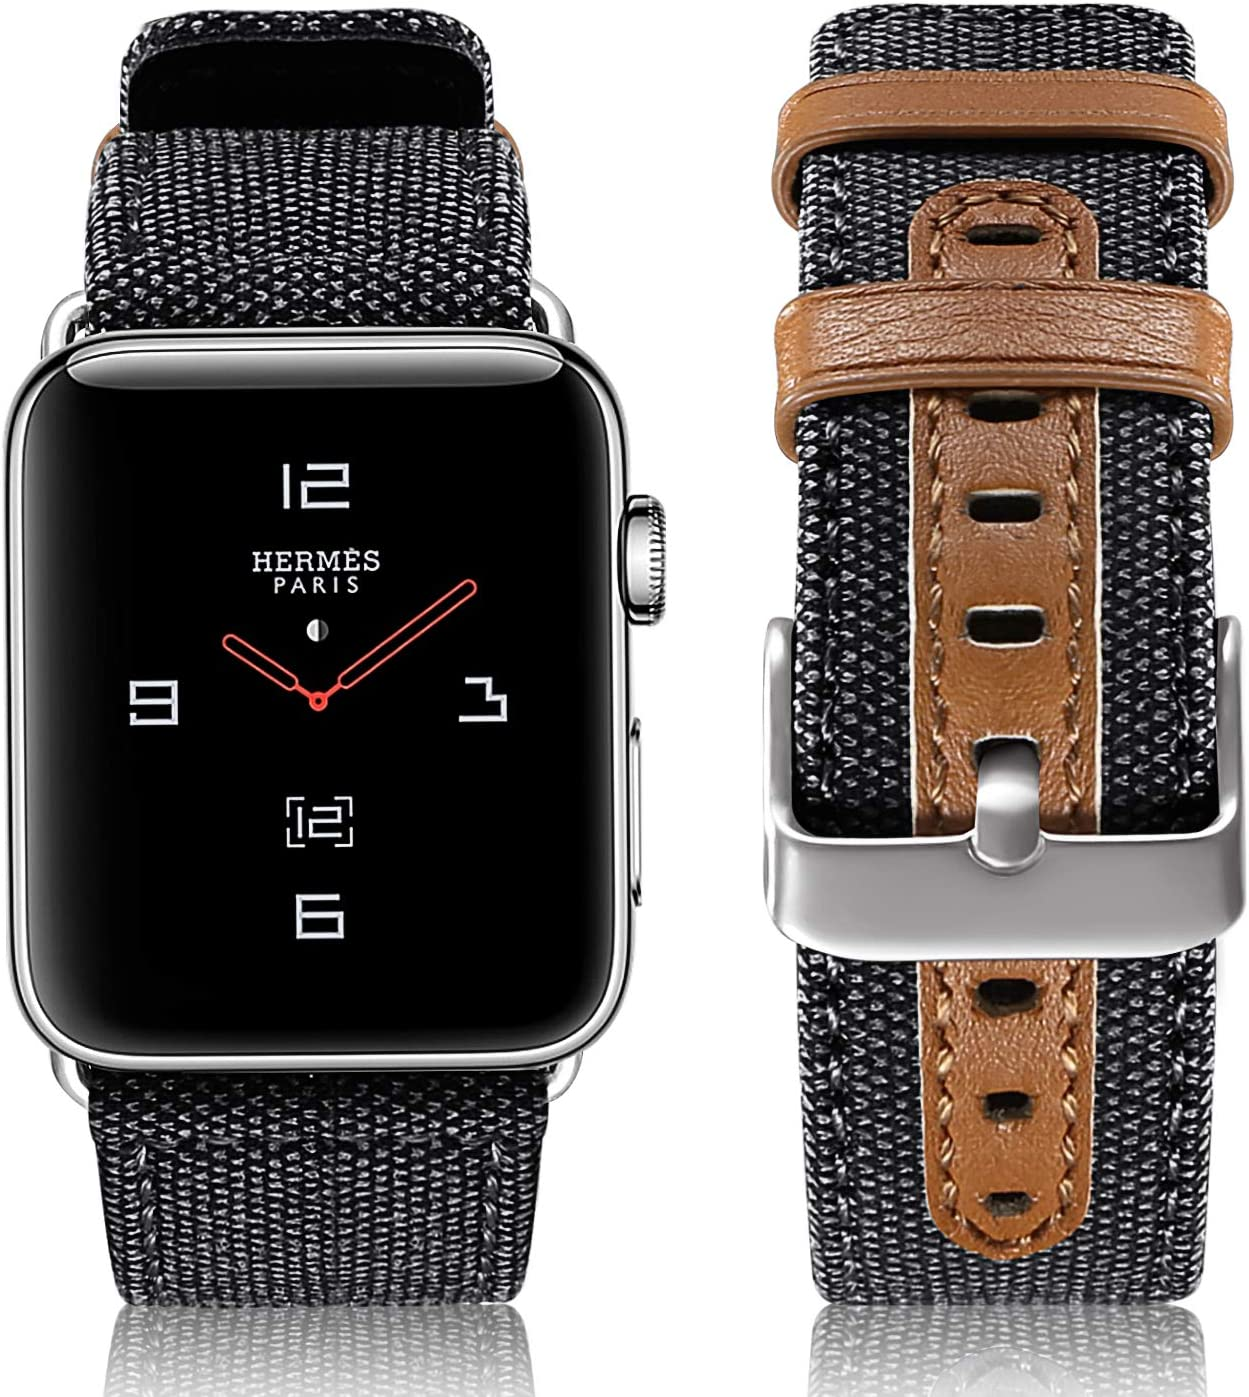 SKYLET Compatible with Apple Watch Band 42mm 38mm Series 5 44mm 40mm Leather Band, Canvas Fabric Leather Wristbands Compatible with Apple Watch Series 4 3 2 1 Men Women Black